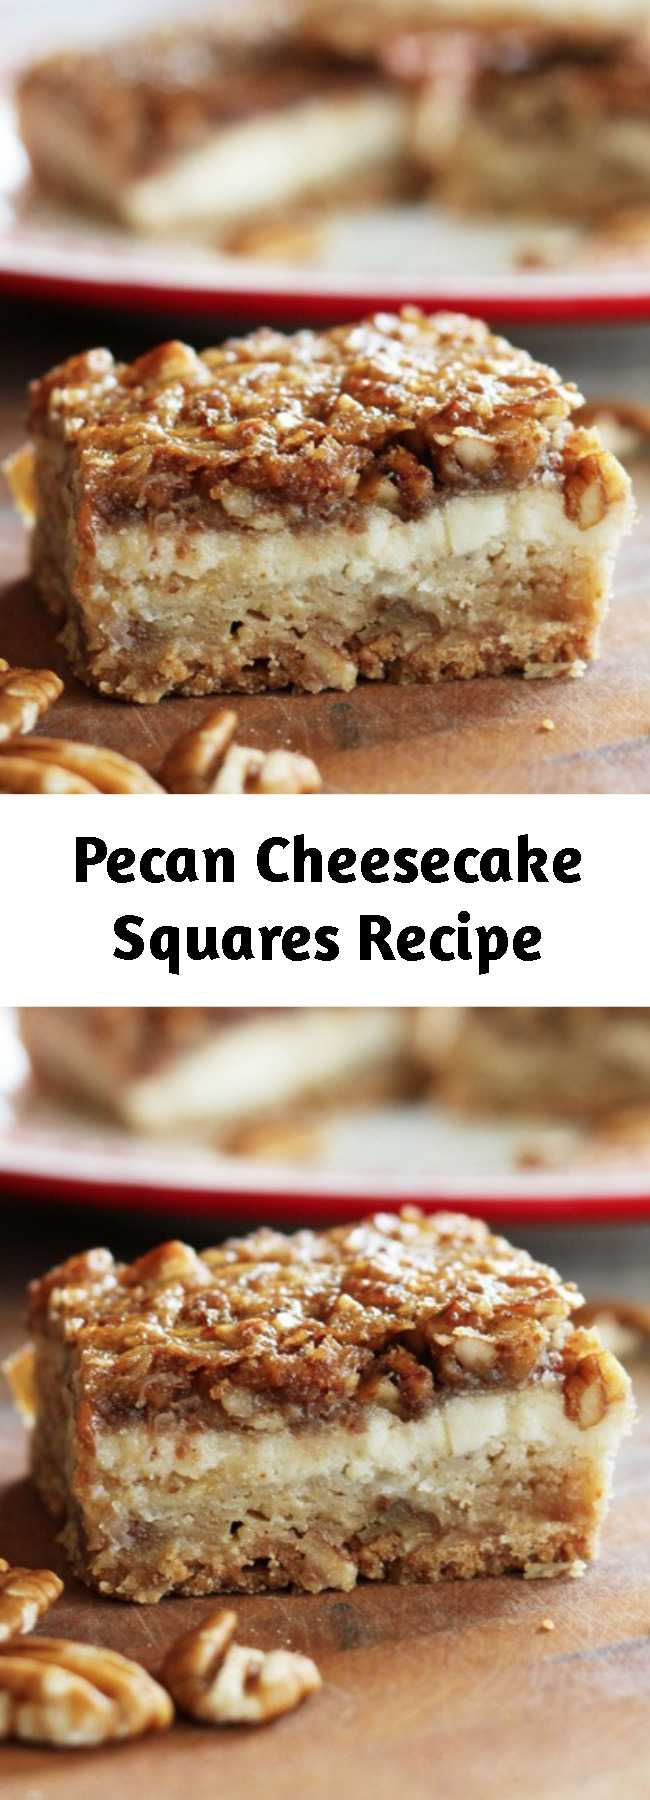 Pecan Cheesecake Squares Recipe - Each square of this scrumptious dessert boasts a layer of shortbread, a layer of tangy cheesecake, and a crunchy pecan pie layer in every bite!